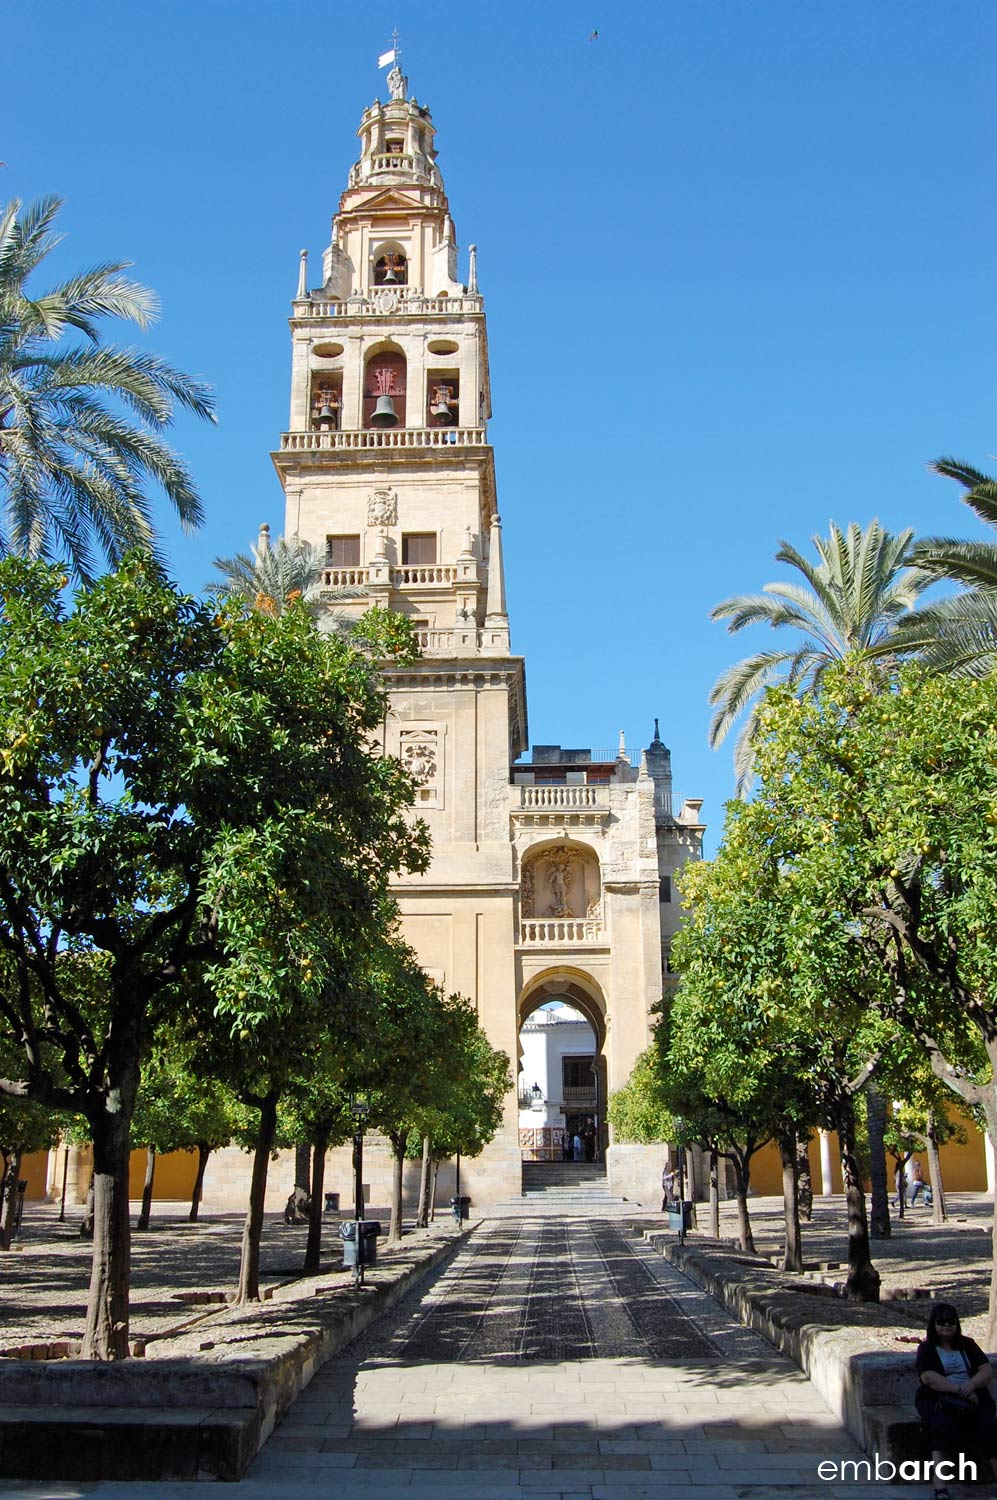 The Mosque-Cathedral of Cordoba - view of exterior